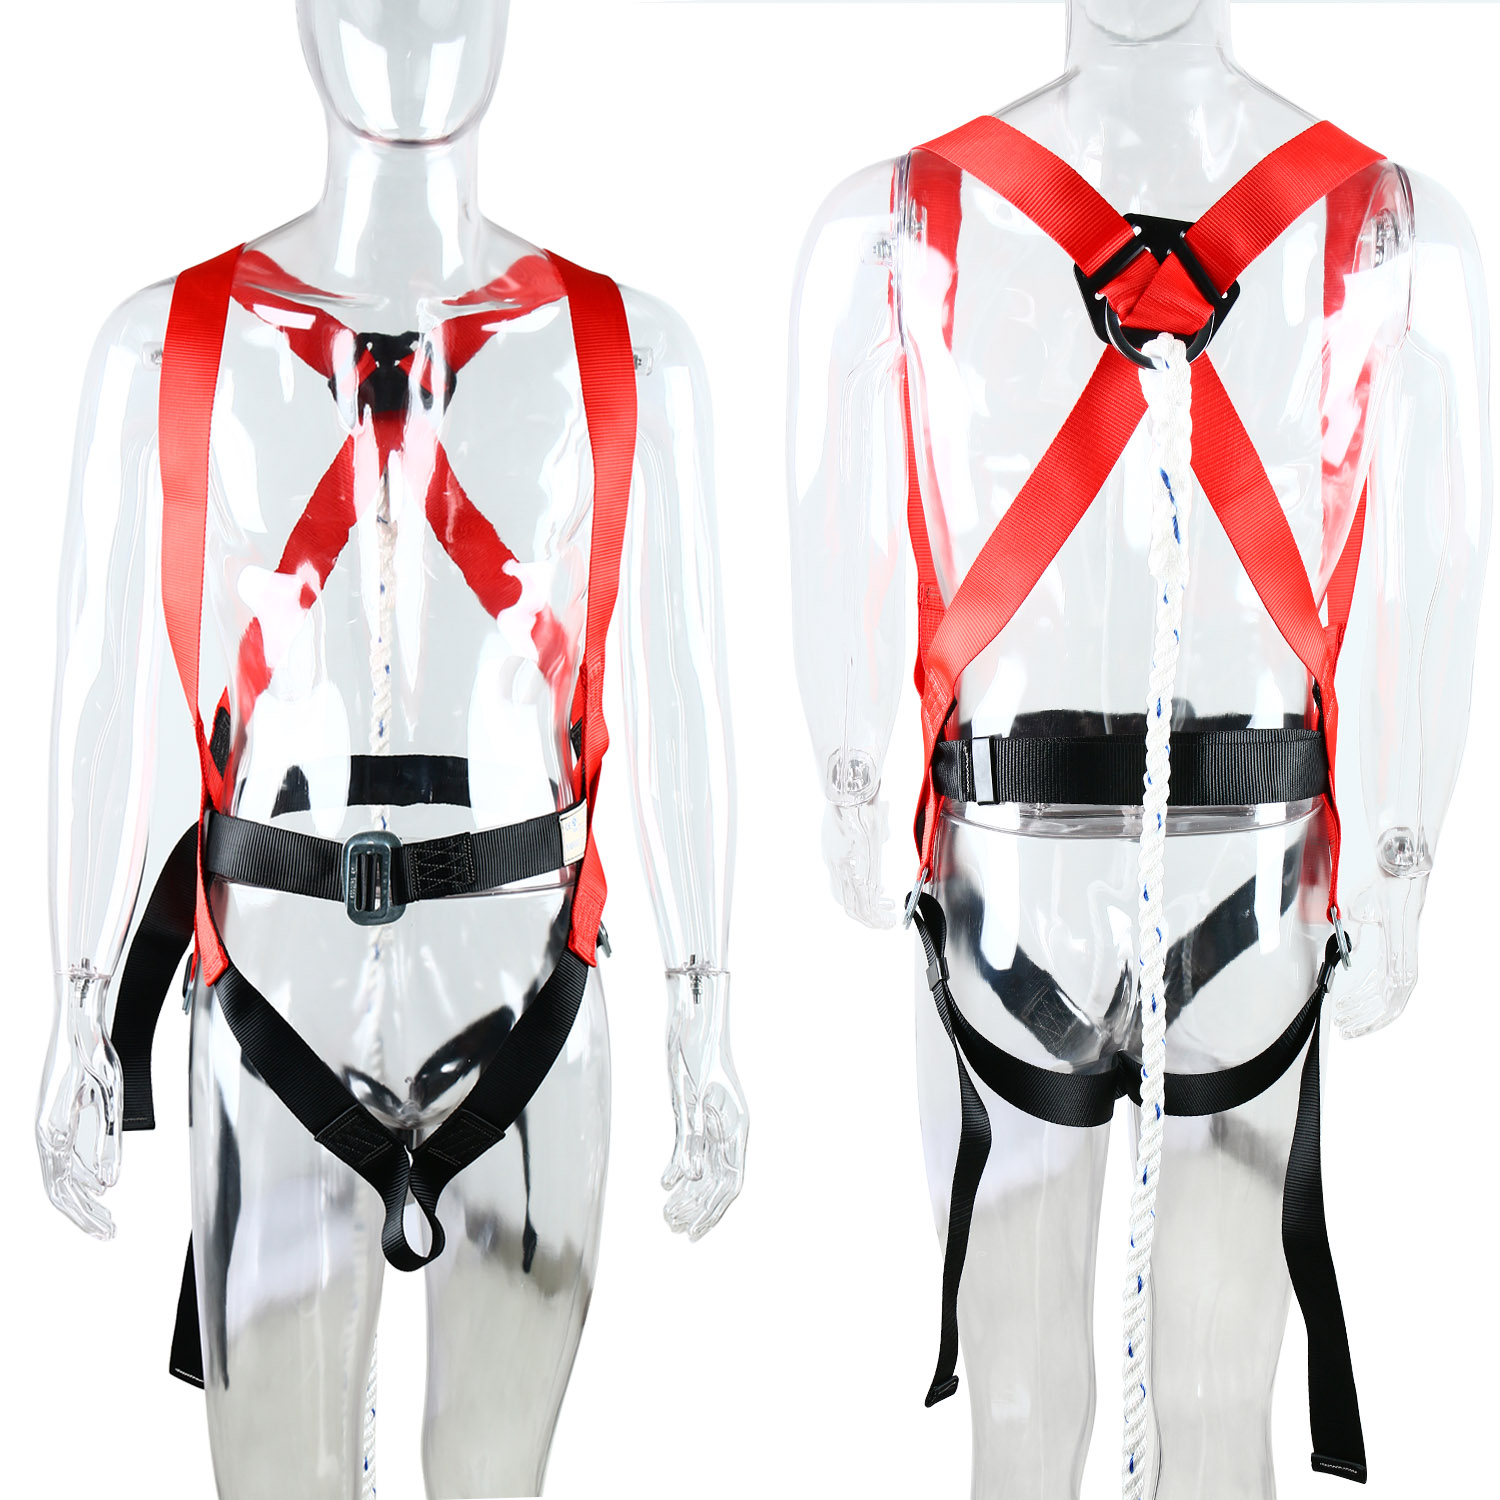 Fall Protection 5 Points Adjustable Full Safety Harness Belt ...